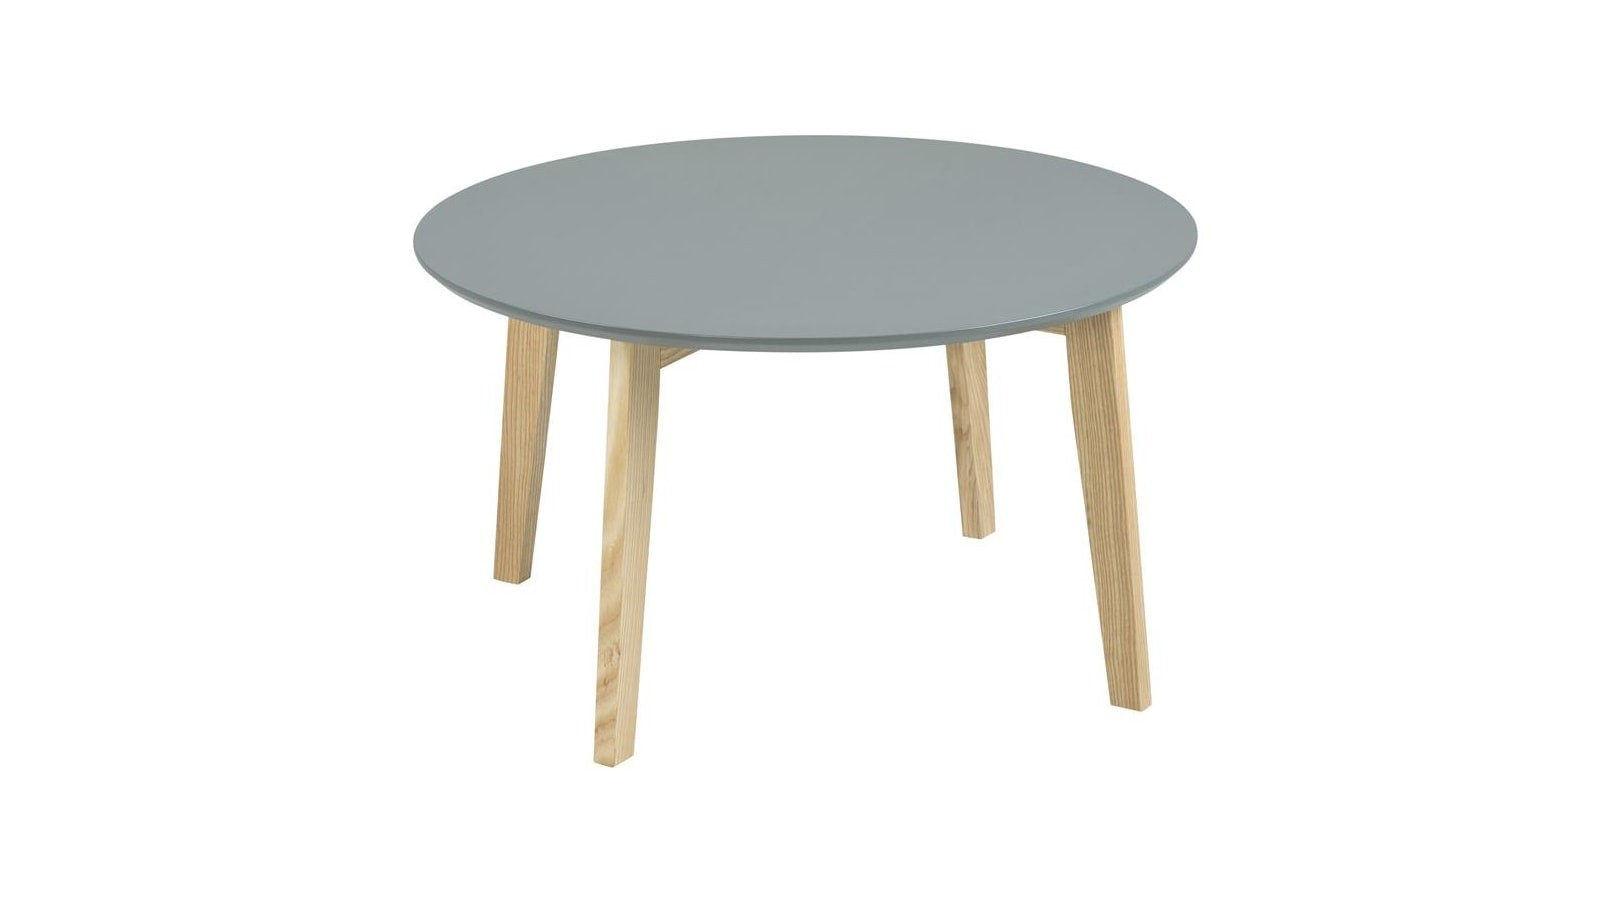 Table basse style scandinave grise